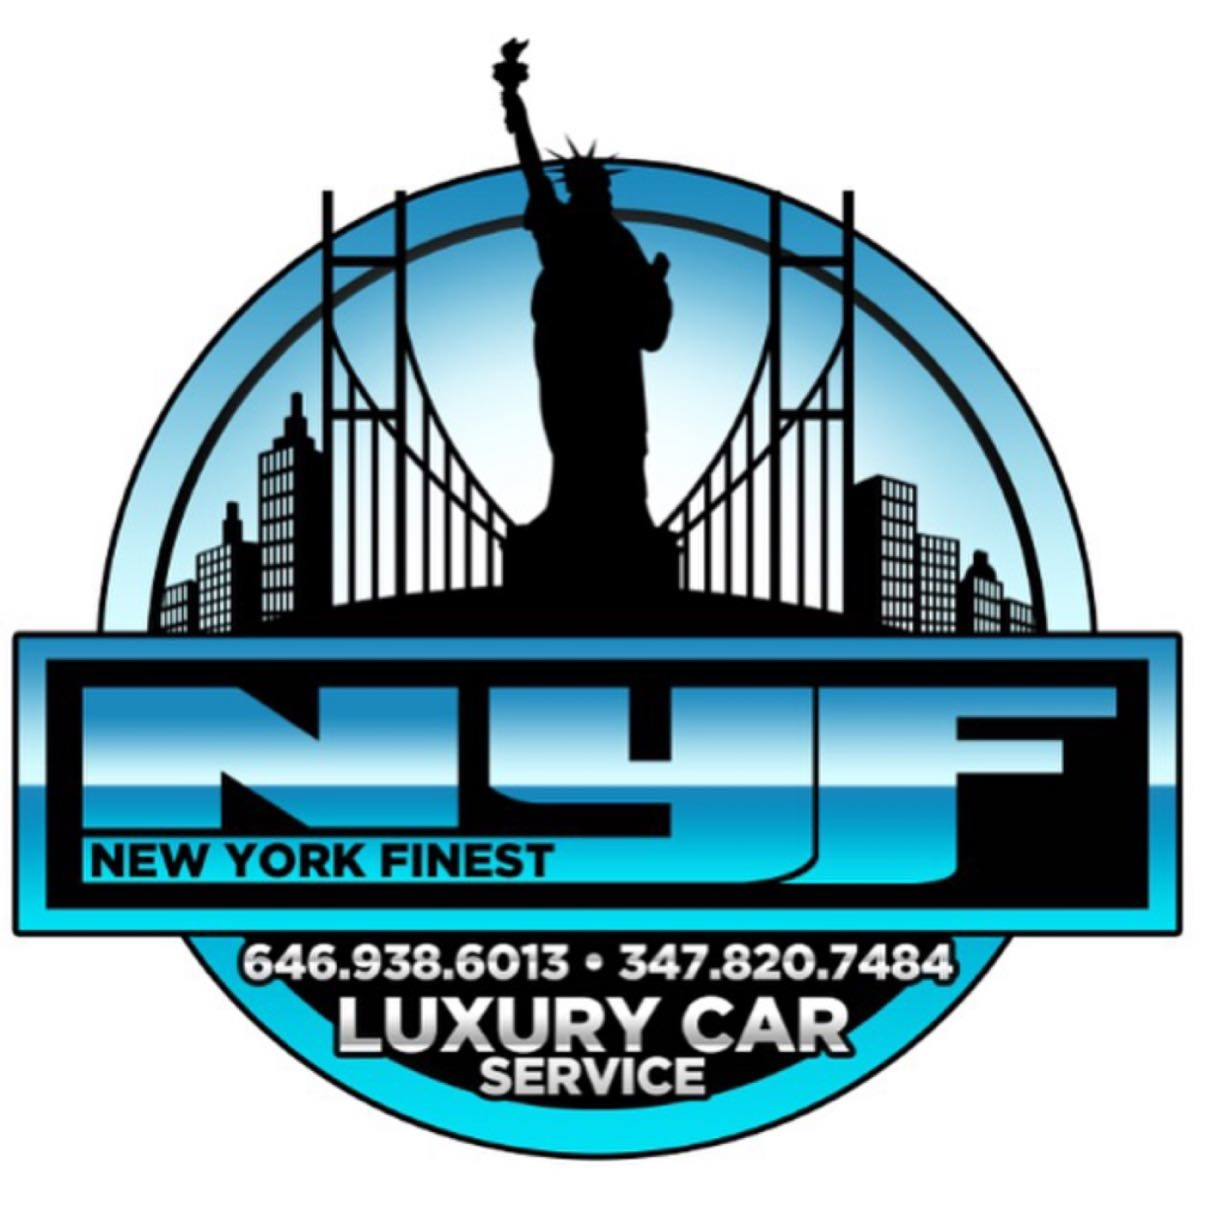 New York's Finest Luxury Car & Limousine Service, Yonkers